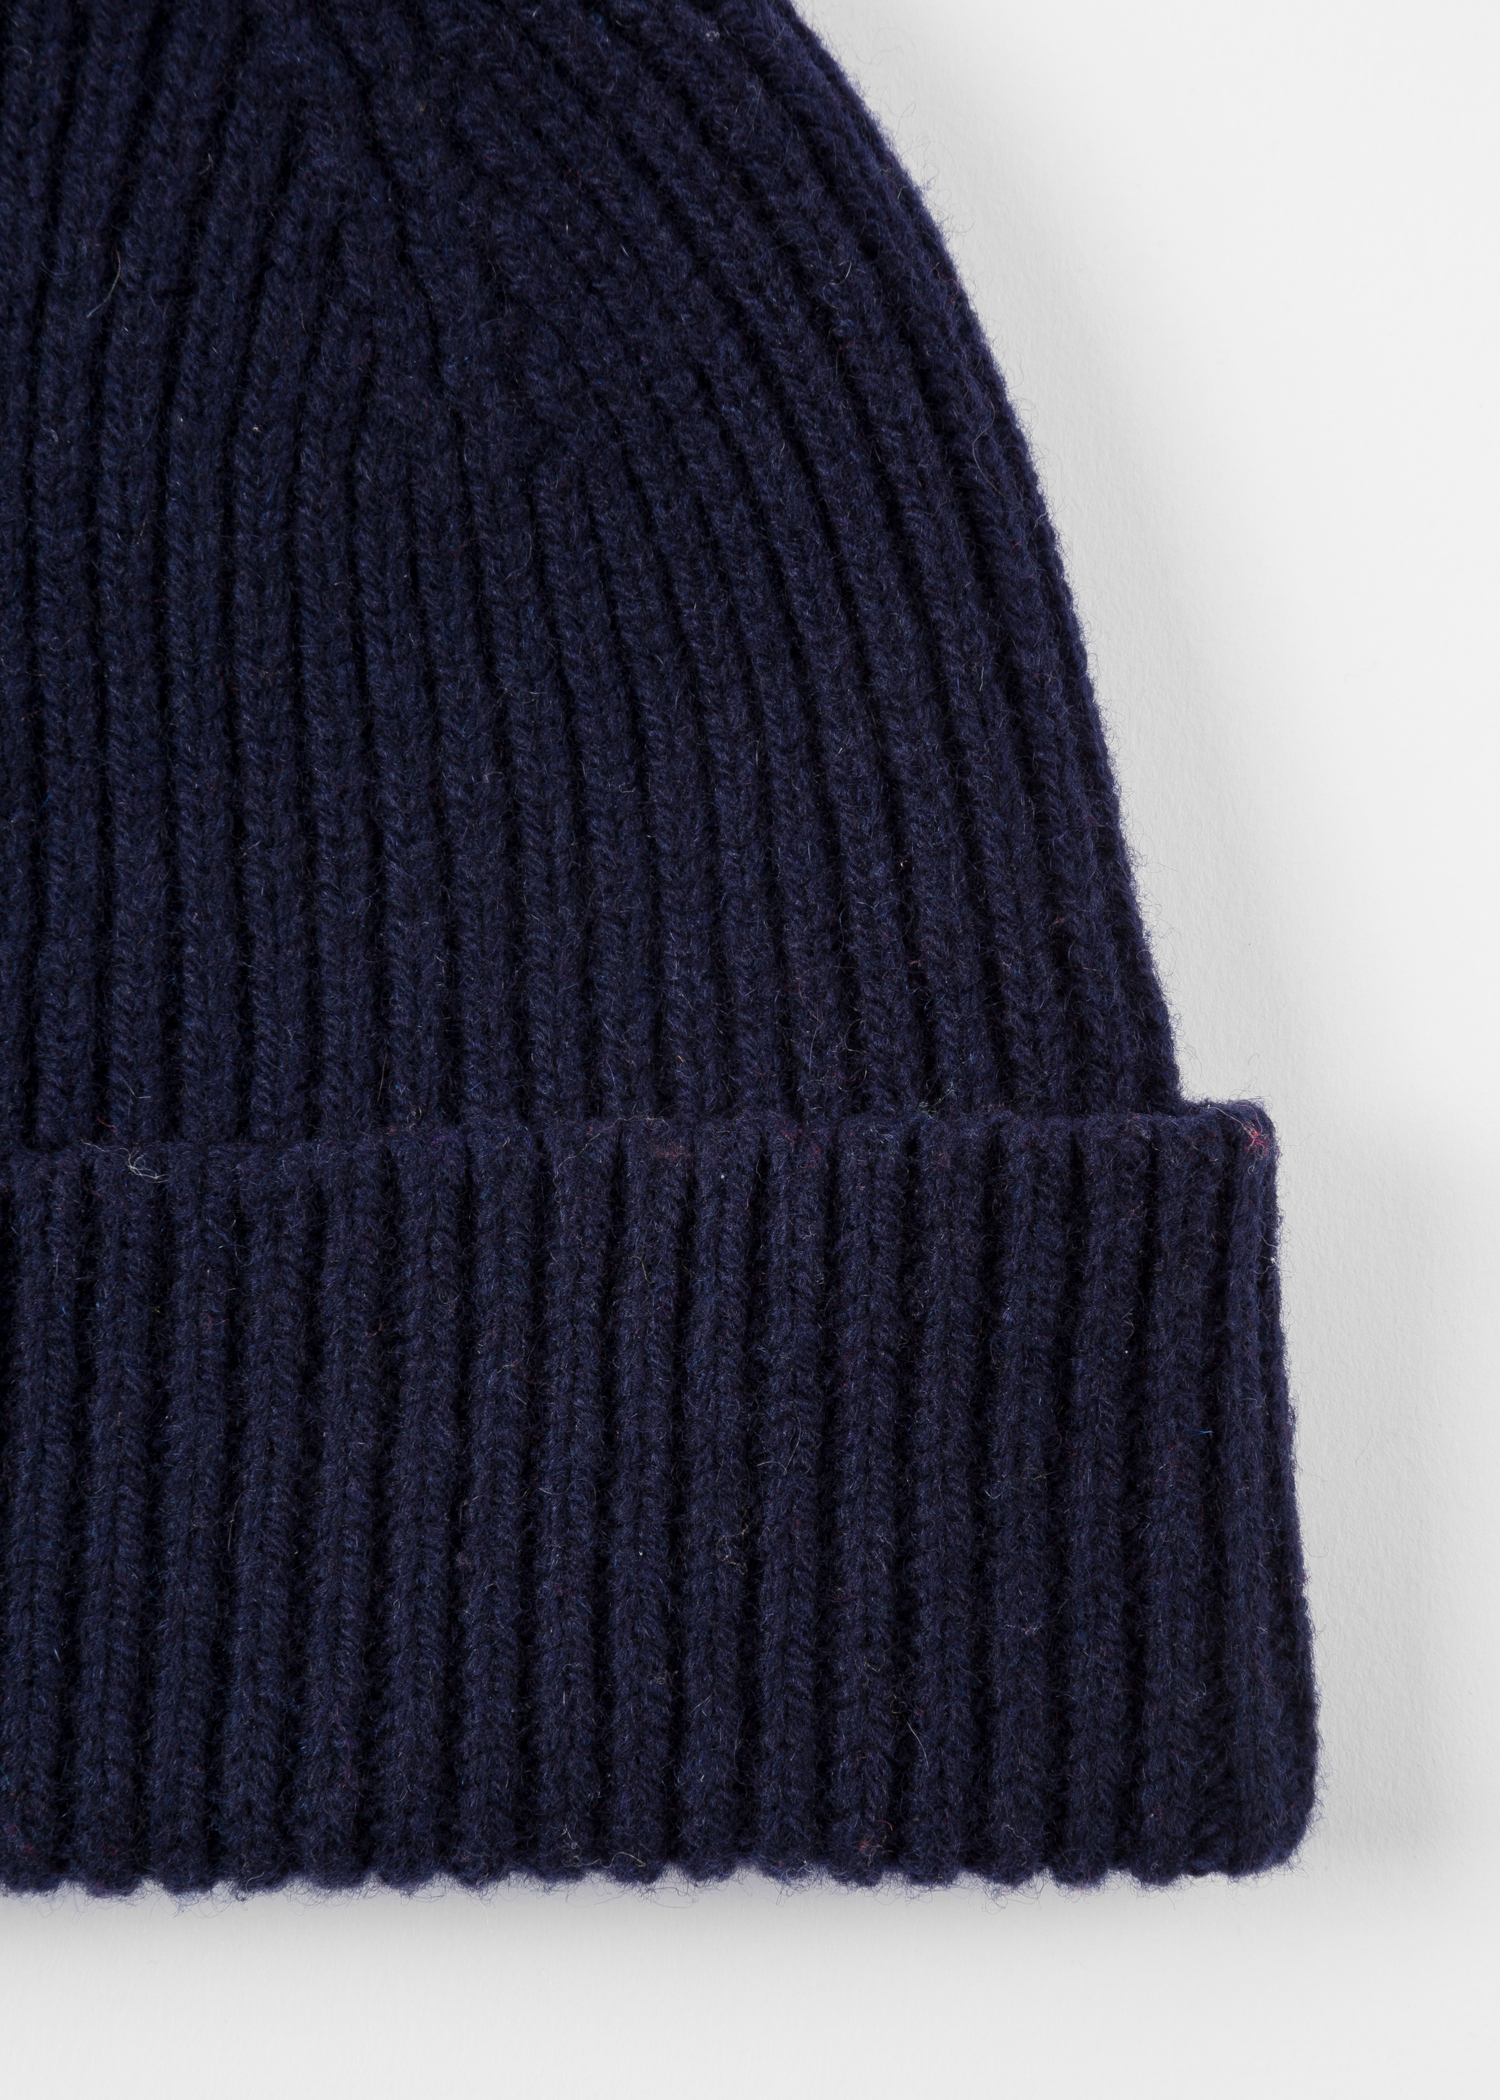 58ed0242a35 Men s Navy Cashmere-Blend Ribbed Beanie Hat - Paul Smith US